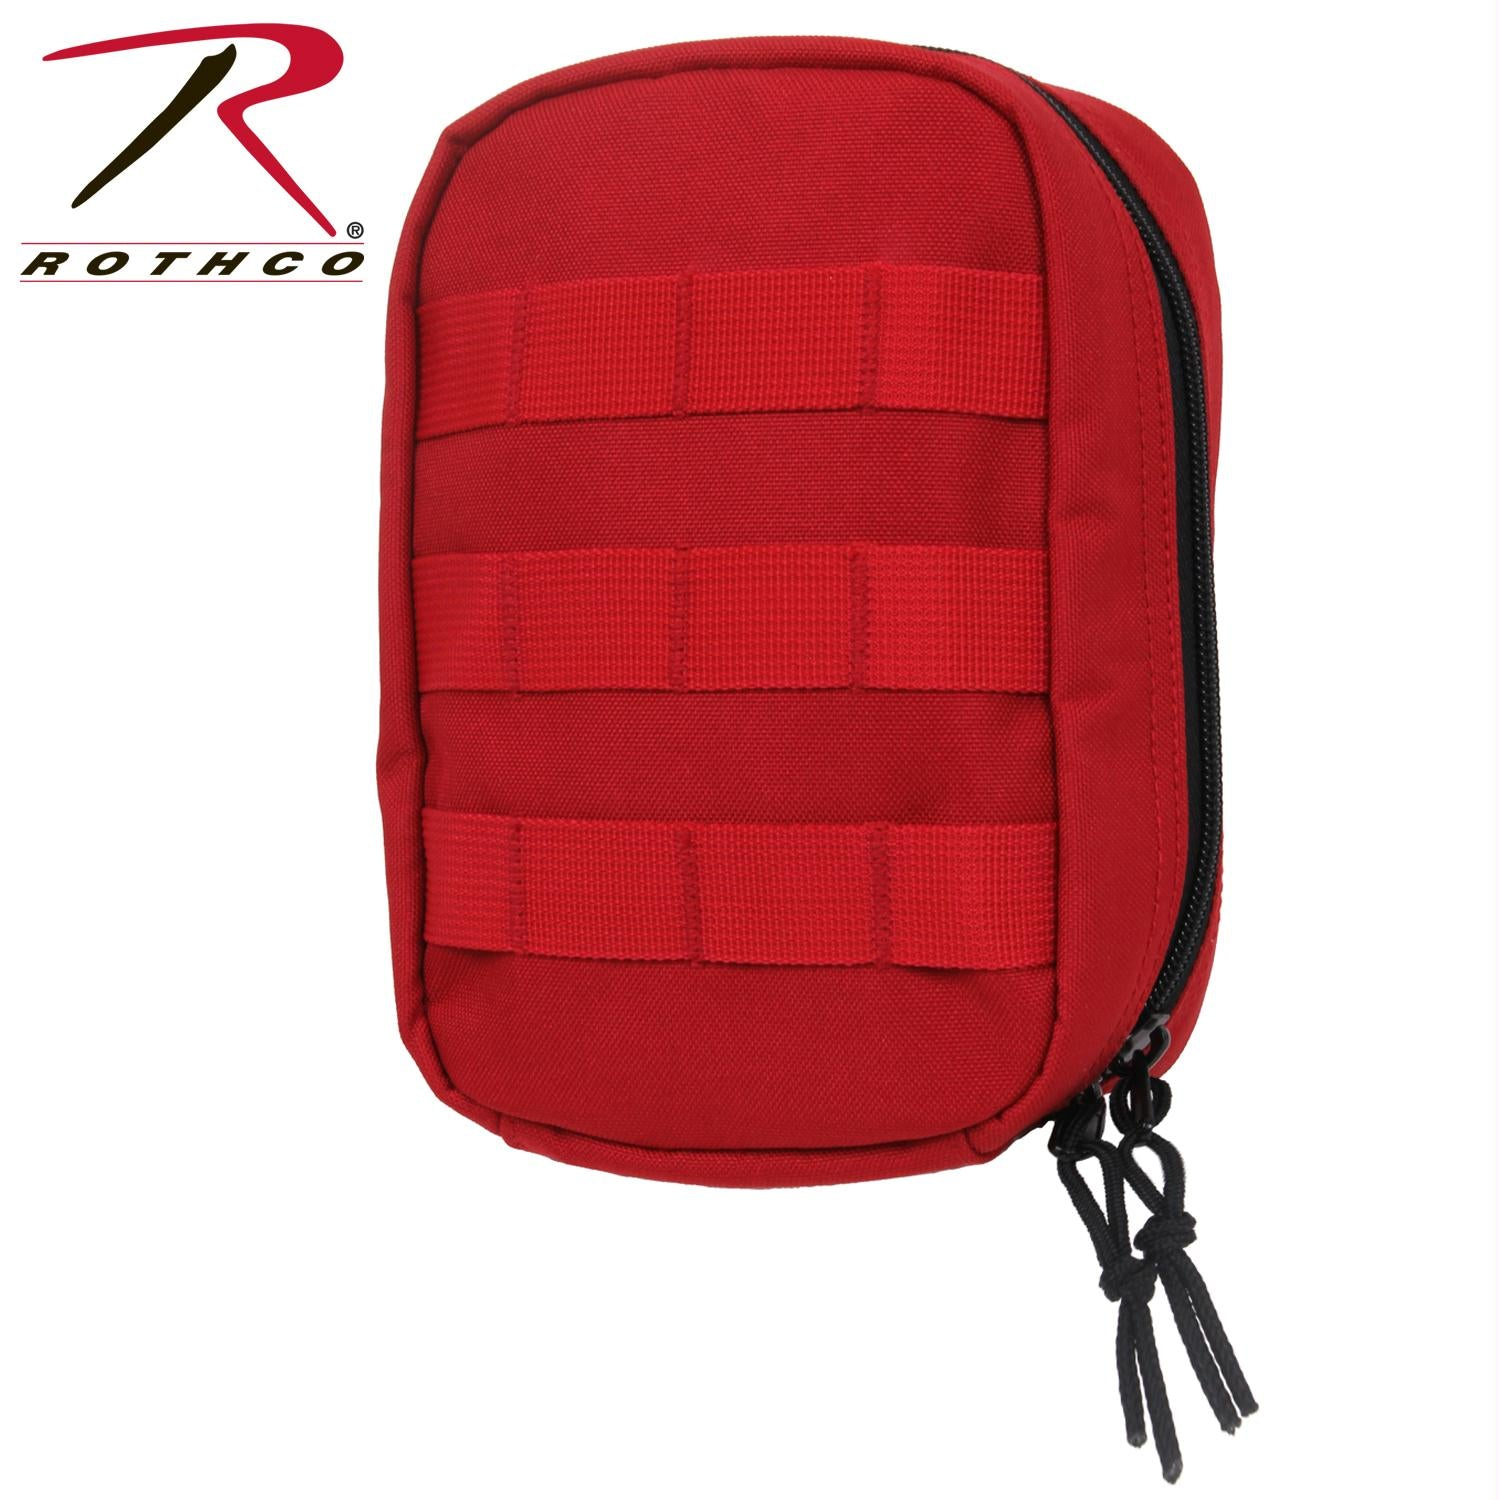 Rothco MOLLE Tactical Trauma Kit - Red